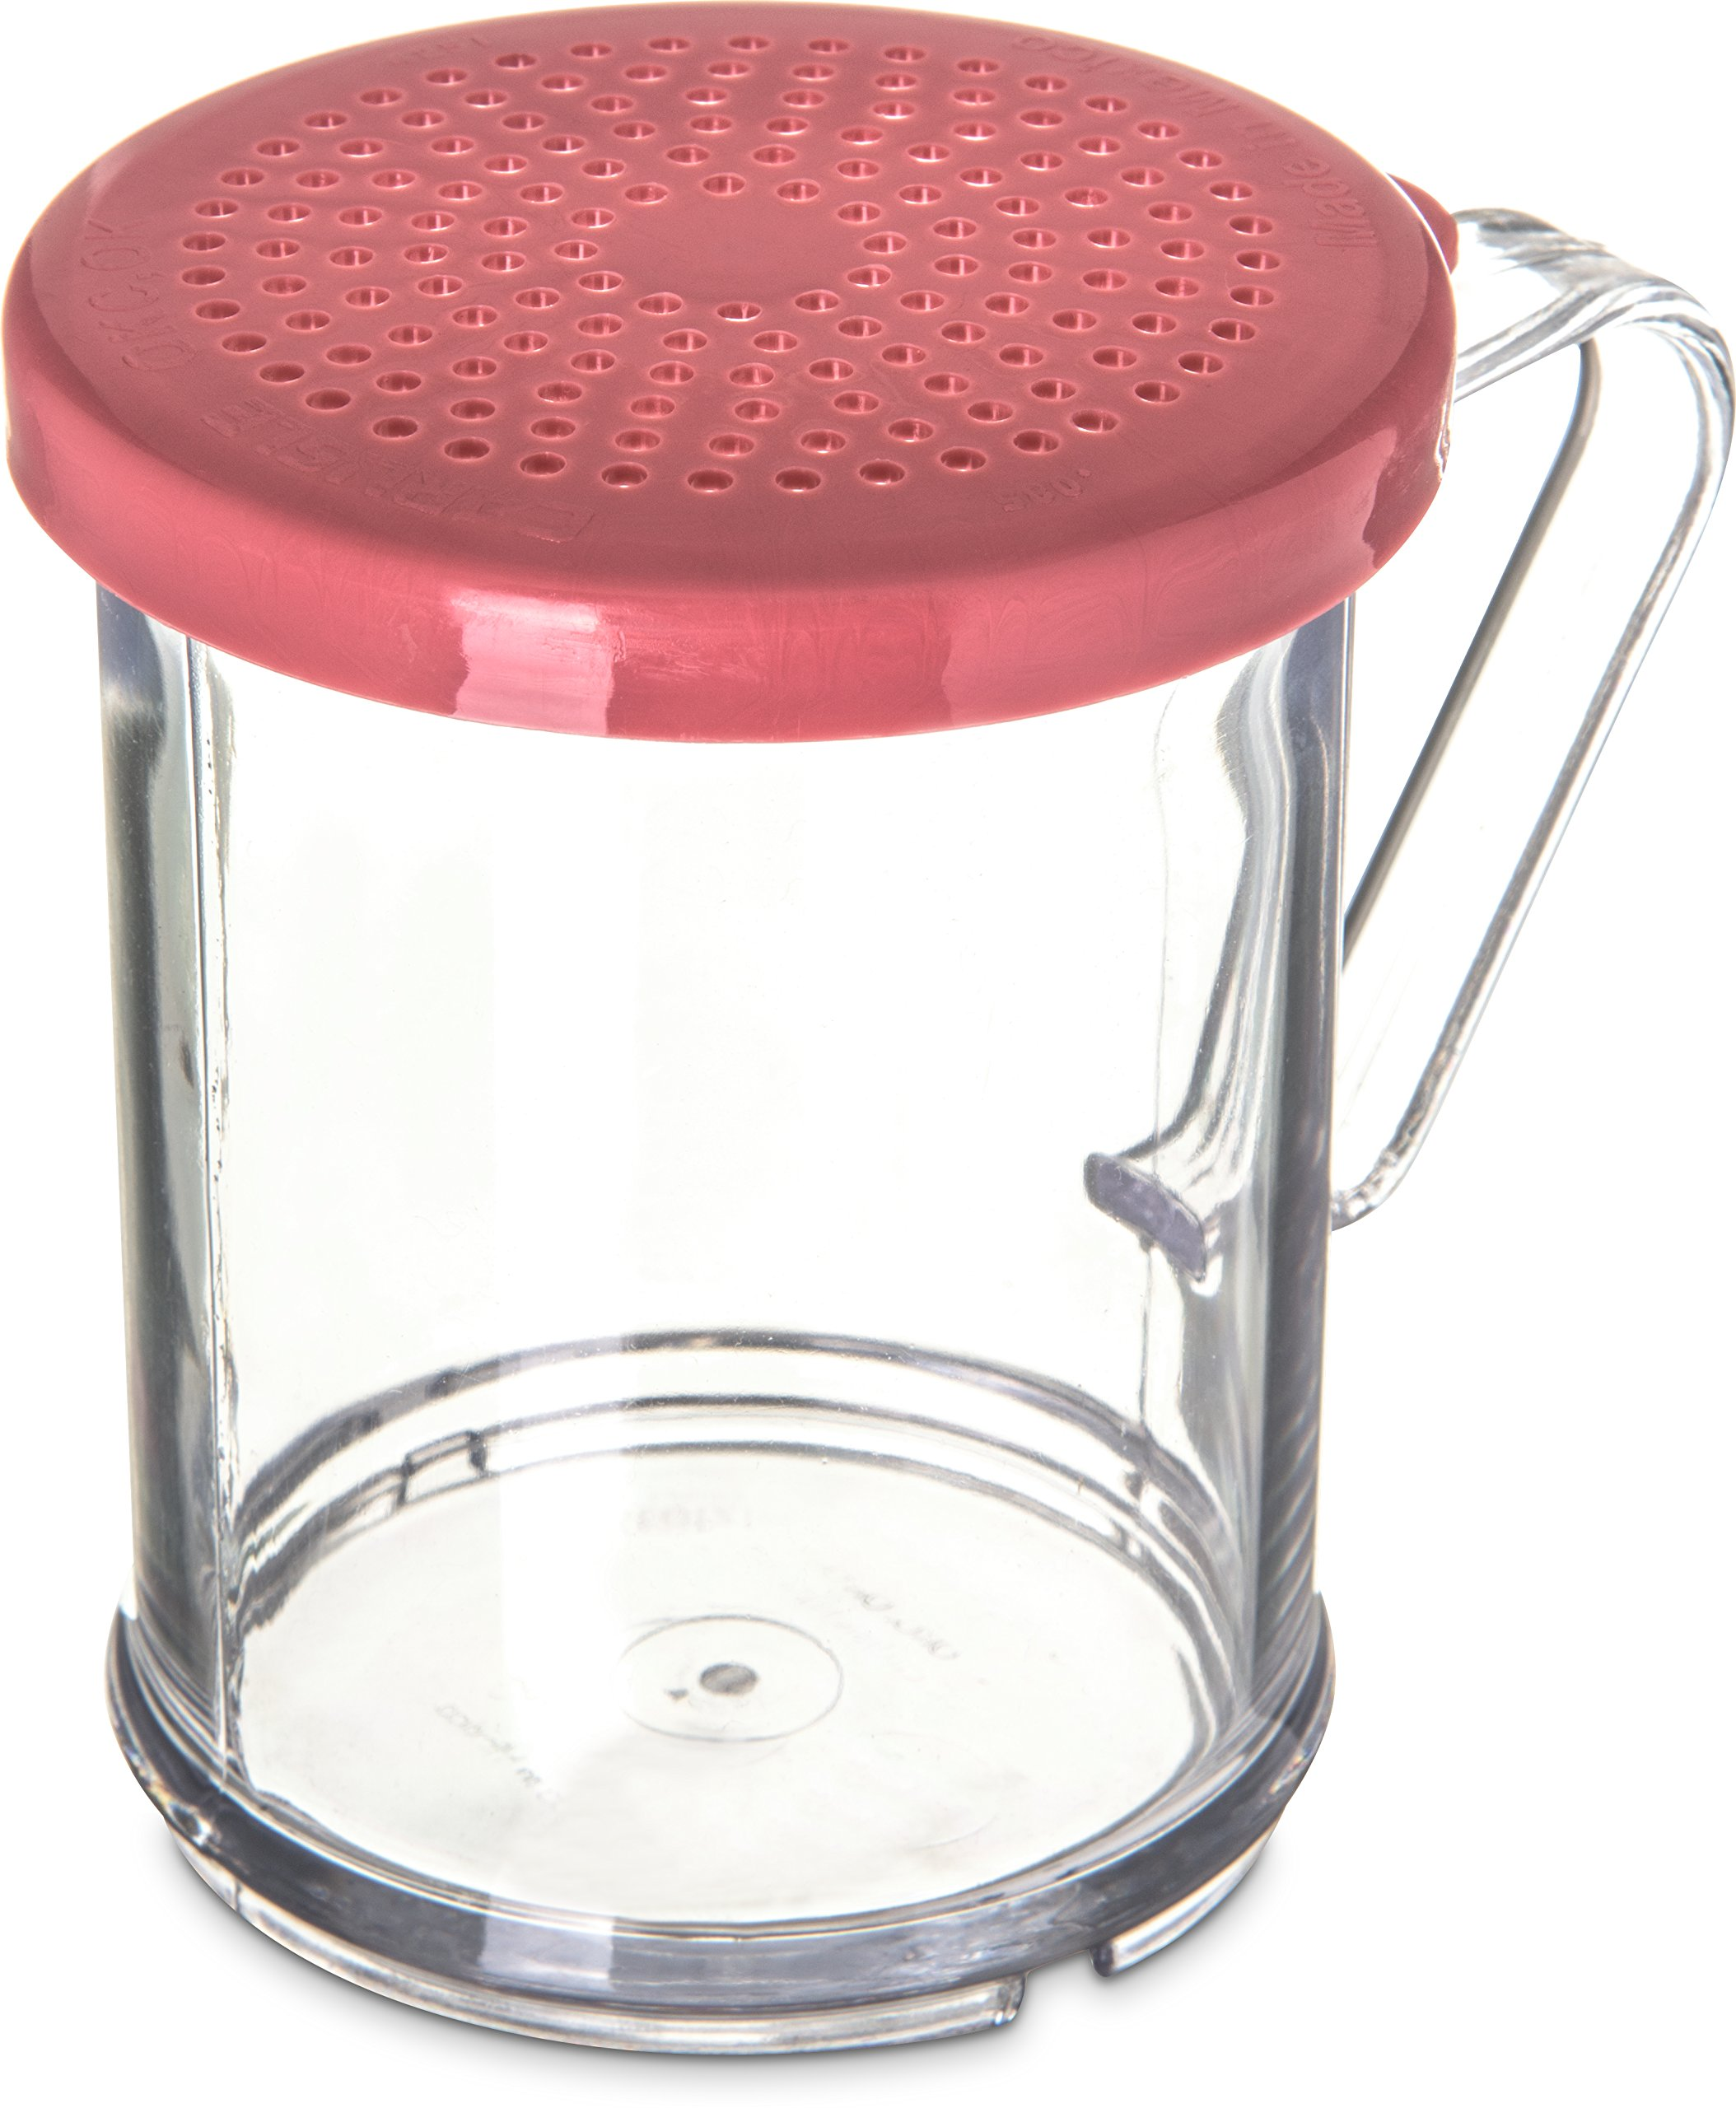 Carlisle 425055 Polycarbonate Shaker/Dredge with Medium Ground Lid, 1 Cup Capacity, Rose (Case of 12) by Carlisle